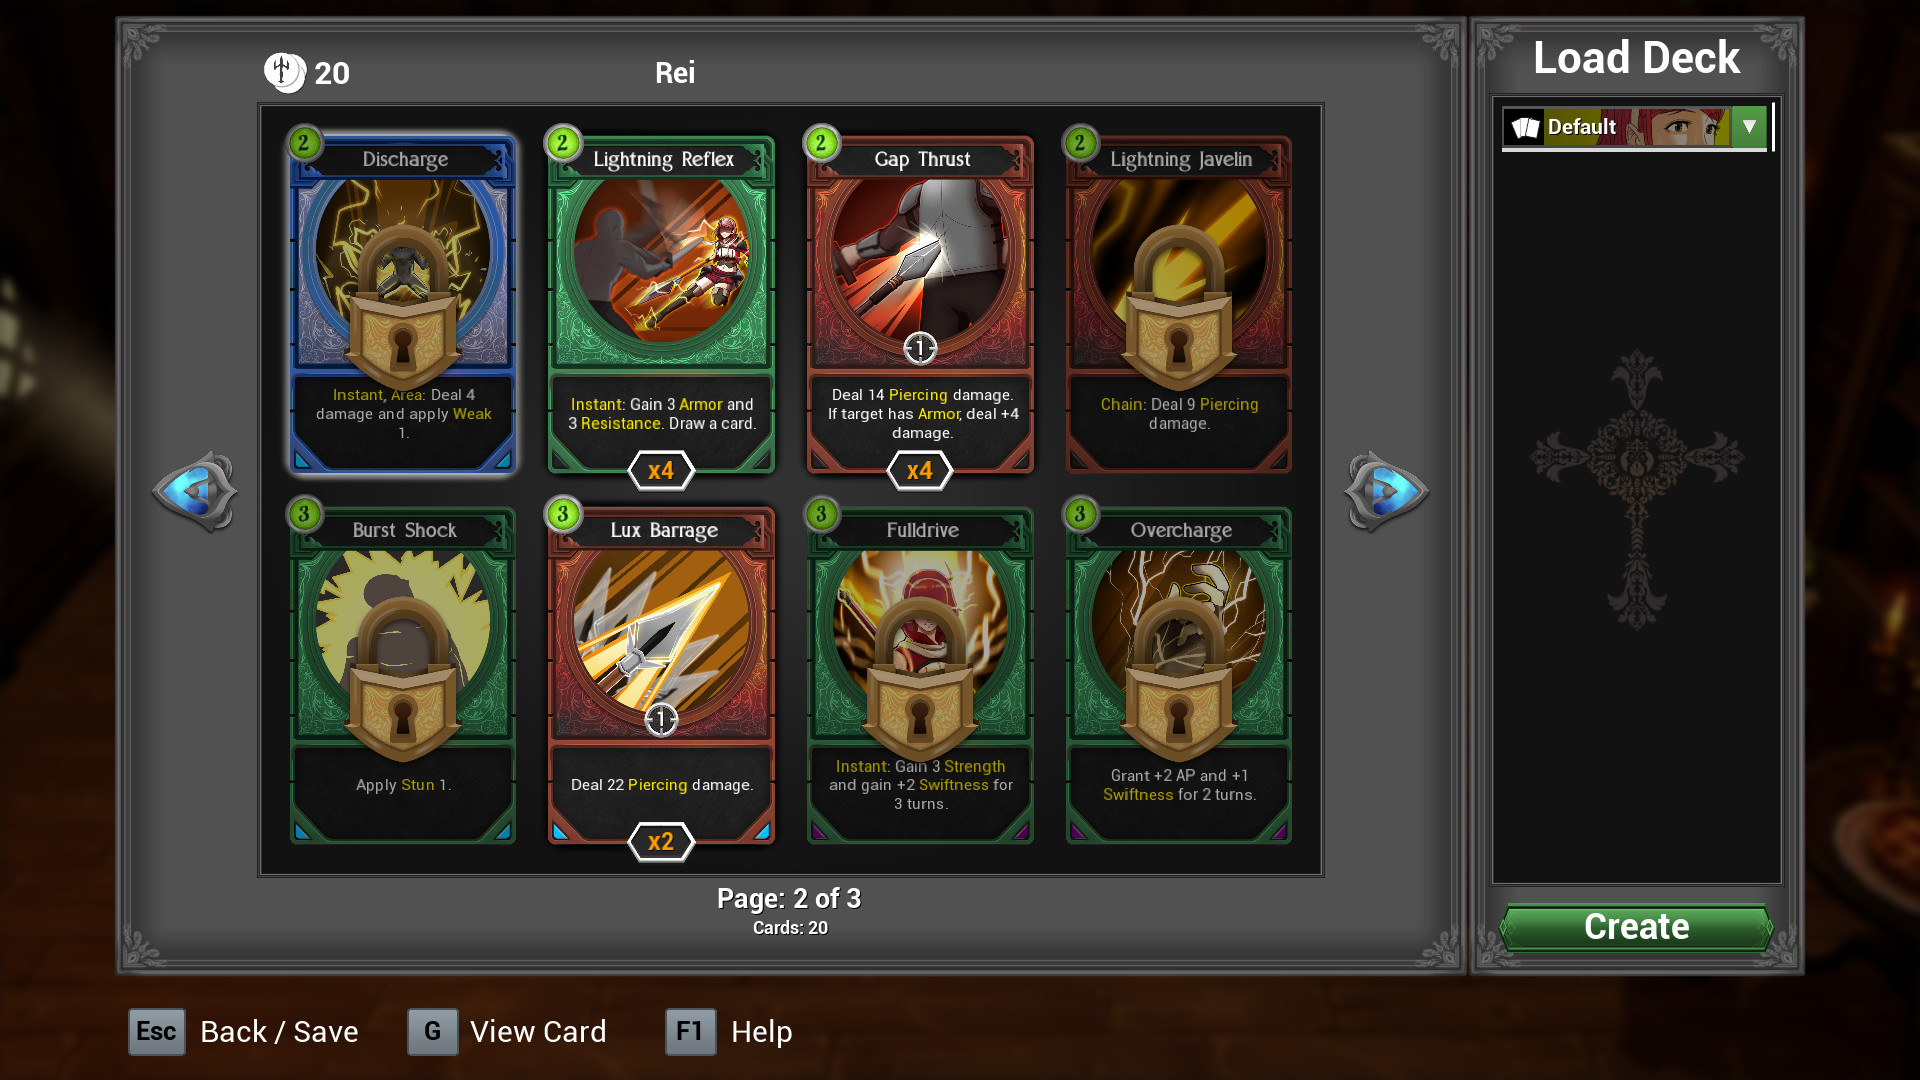 Customize each character's deck.